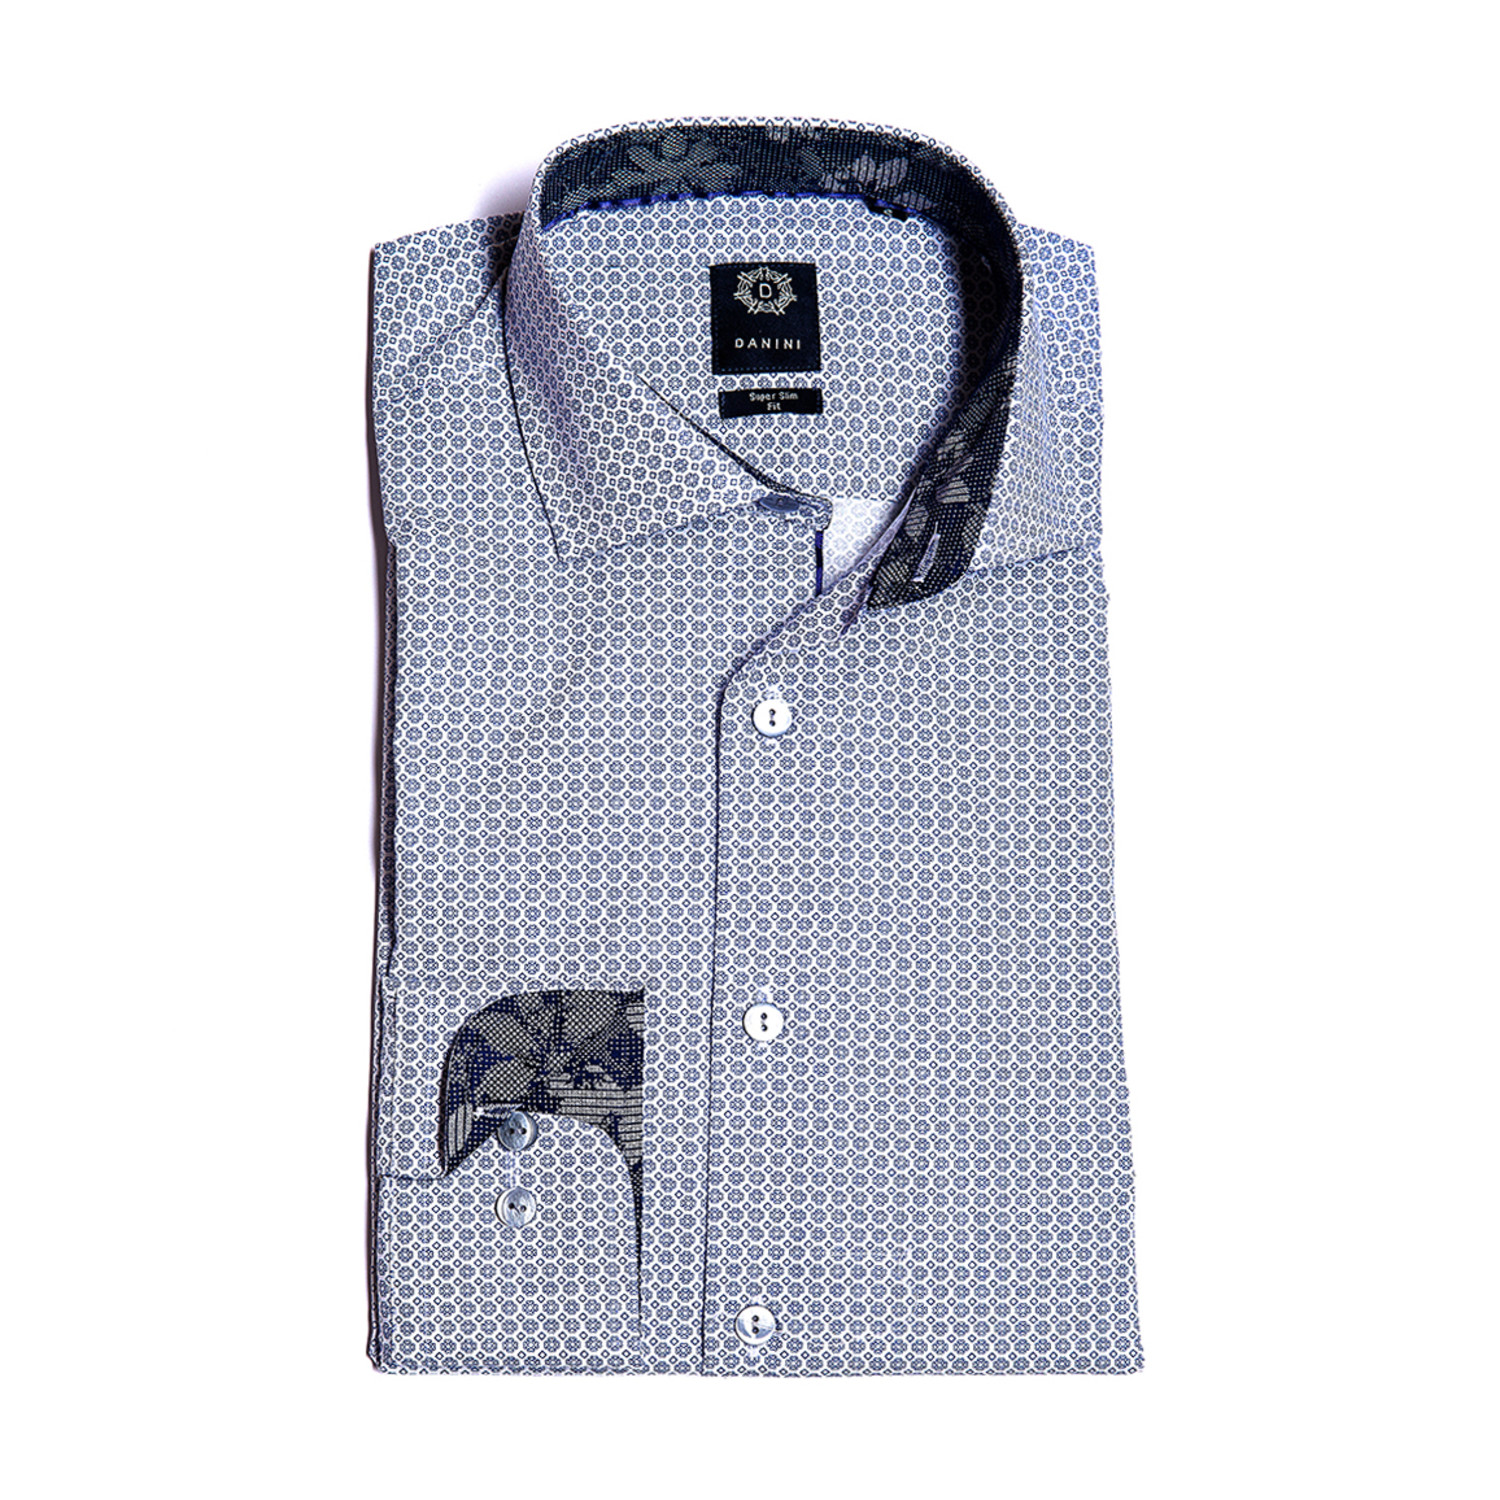 Frederick Slim Fit Dress Shirt Blue Gray S Danini Touch